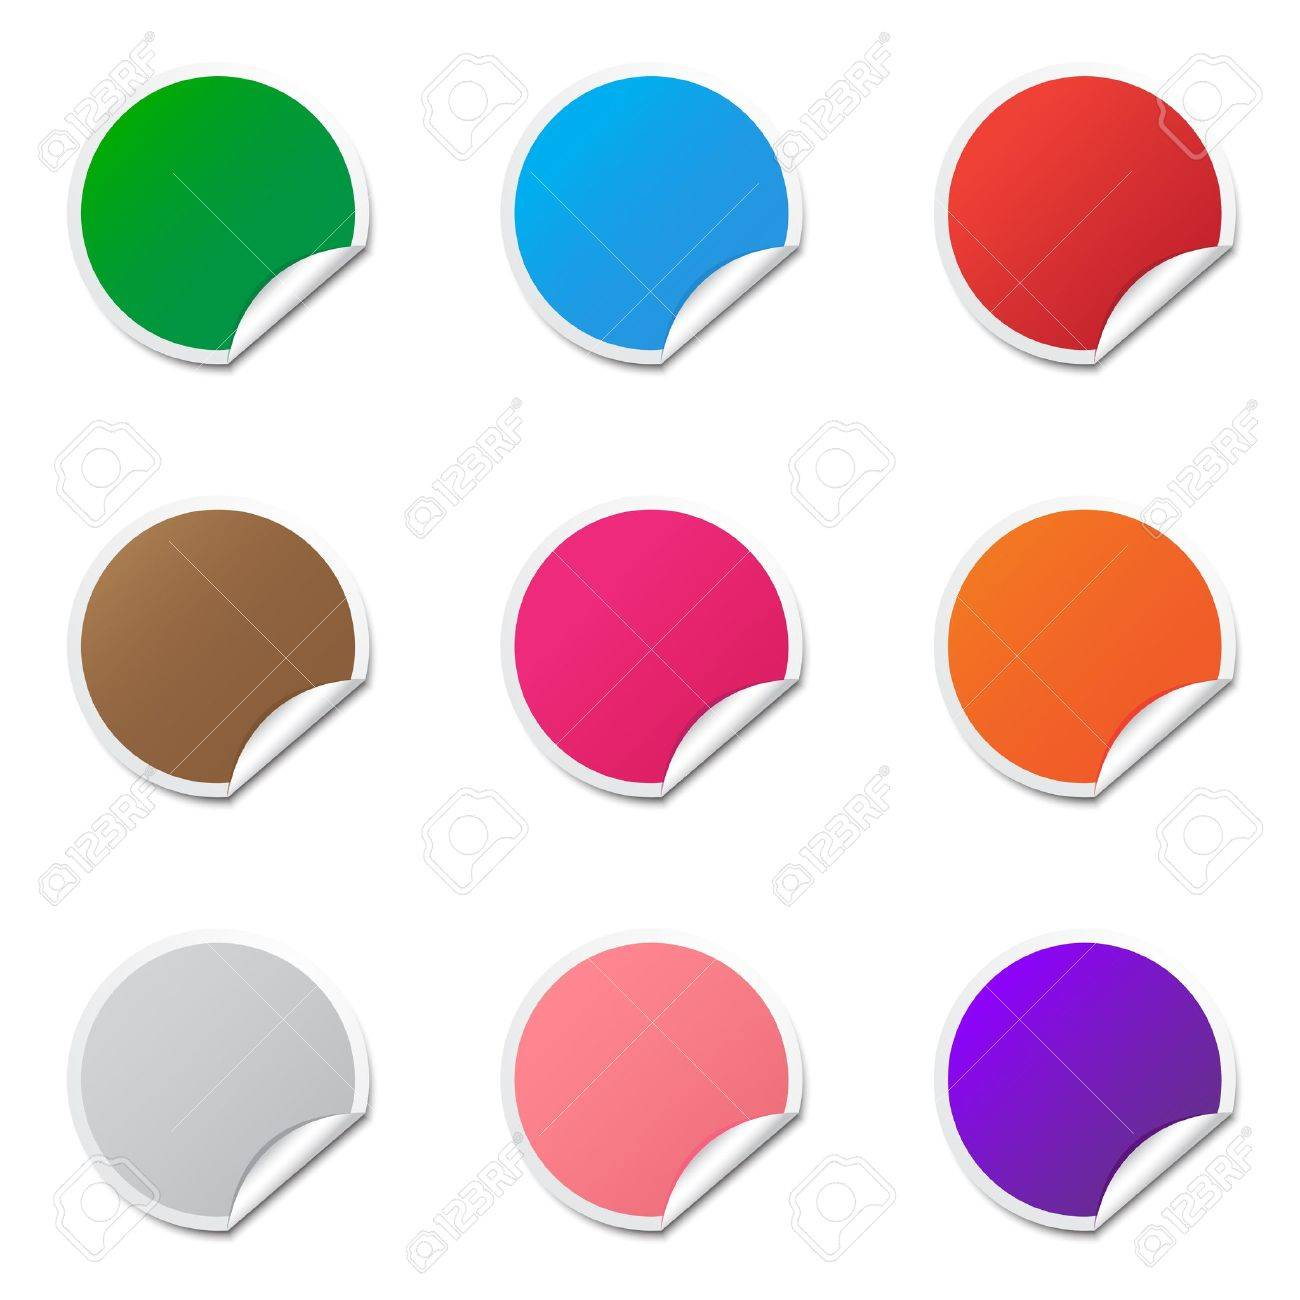 Blank Stickers Royalty Free Cliparts, Vectors, And Stock ...